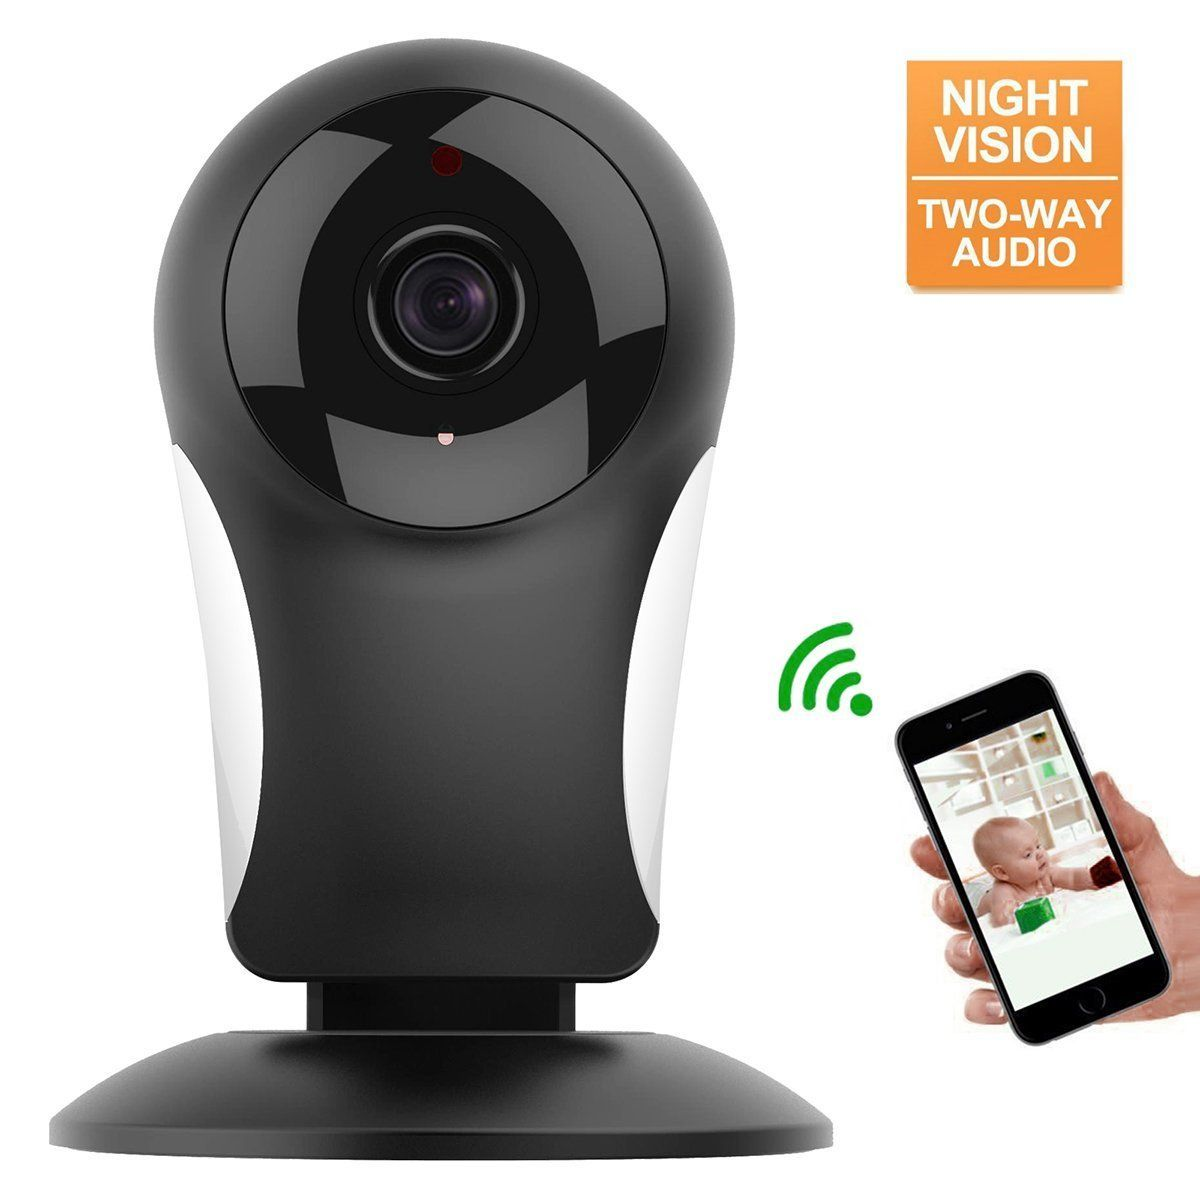 5 Top 10 Best Wireless Security Cameras Reviews Home Security Camera Systems Home Security Systems Wireless Home Security